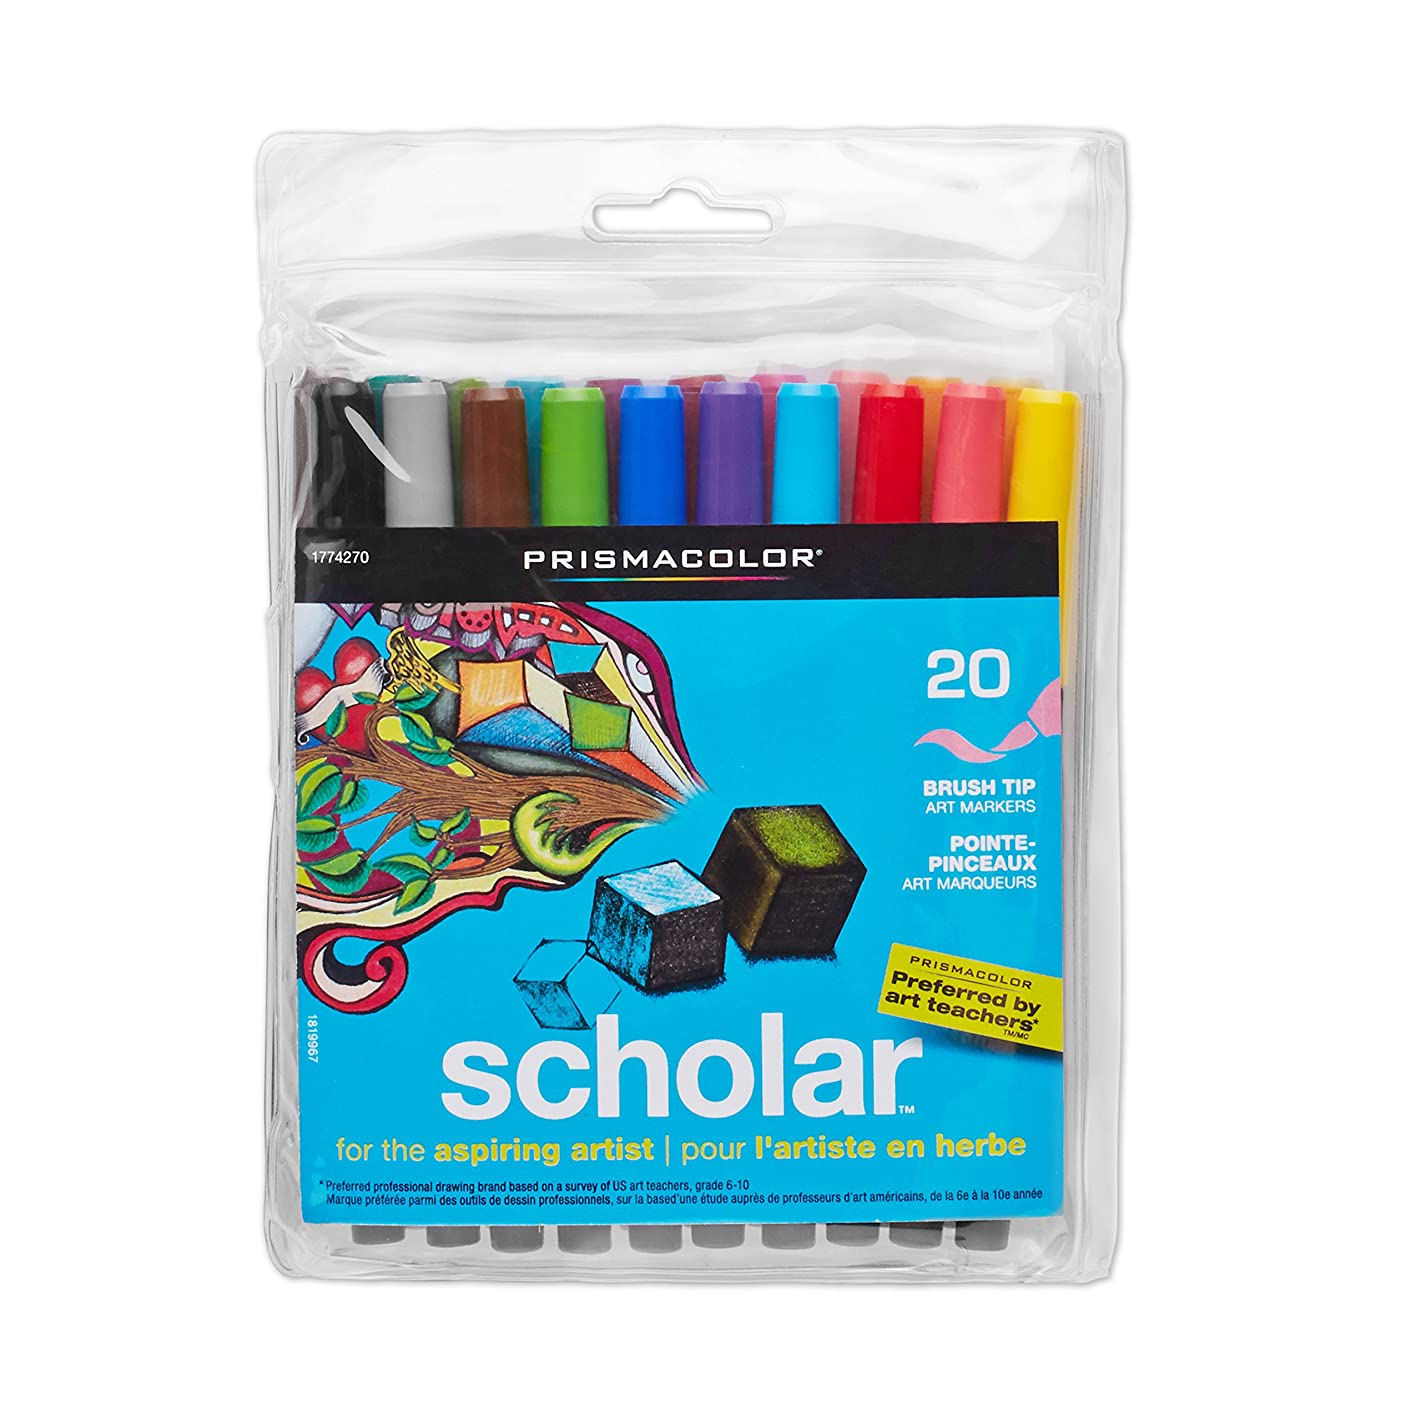 Prismacolor 1774270 Scholar Art Markers, Brush Tip, Assorted, 20-Count